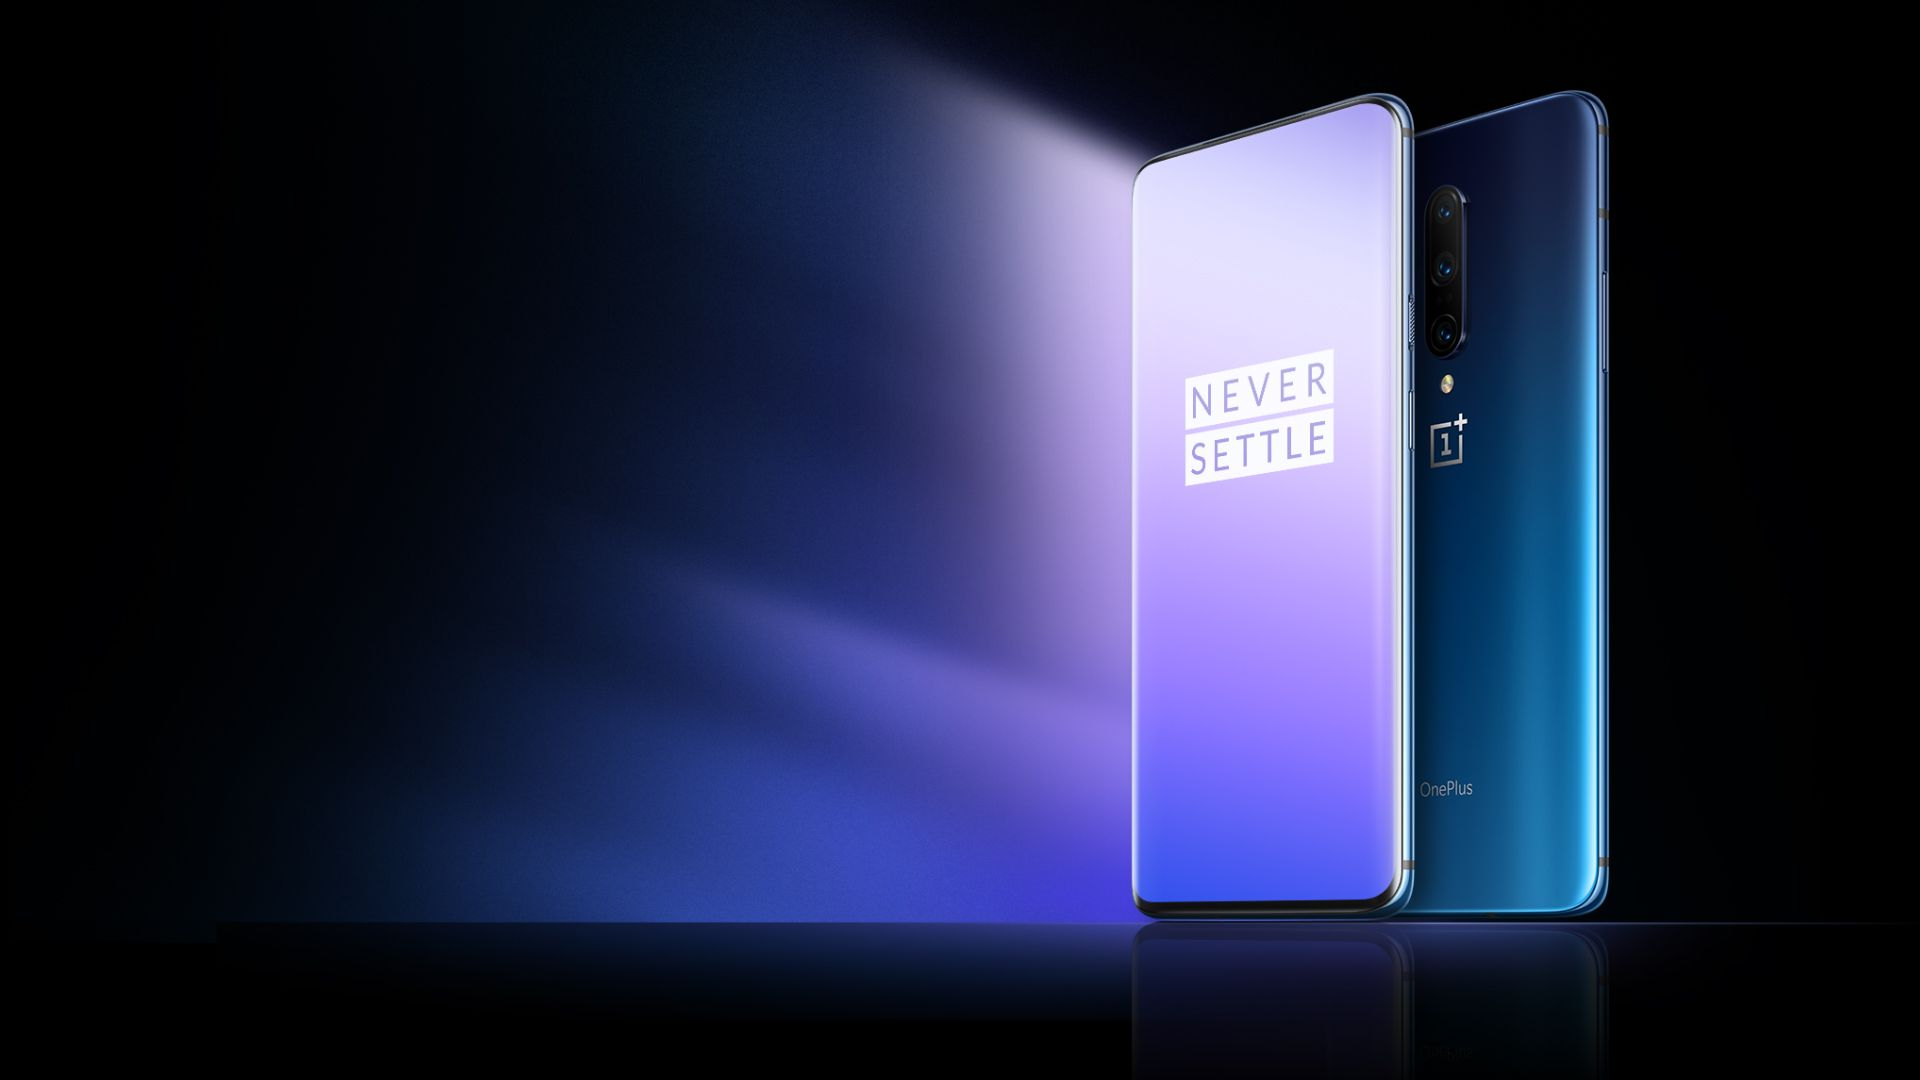 Oneplus 7 Pro с Fluid AMOLED дисплеем – конкурент флагманов за $669